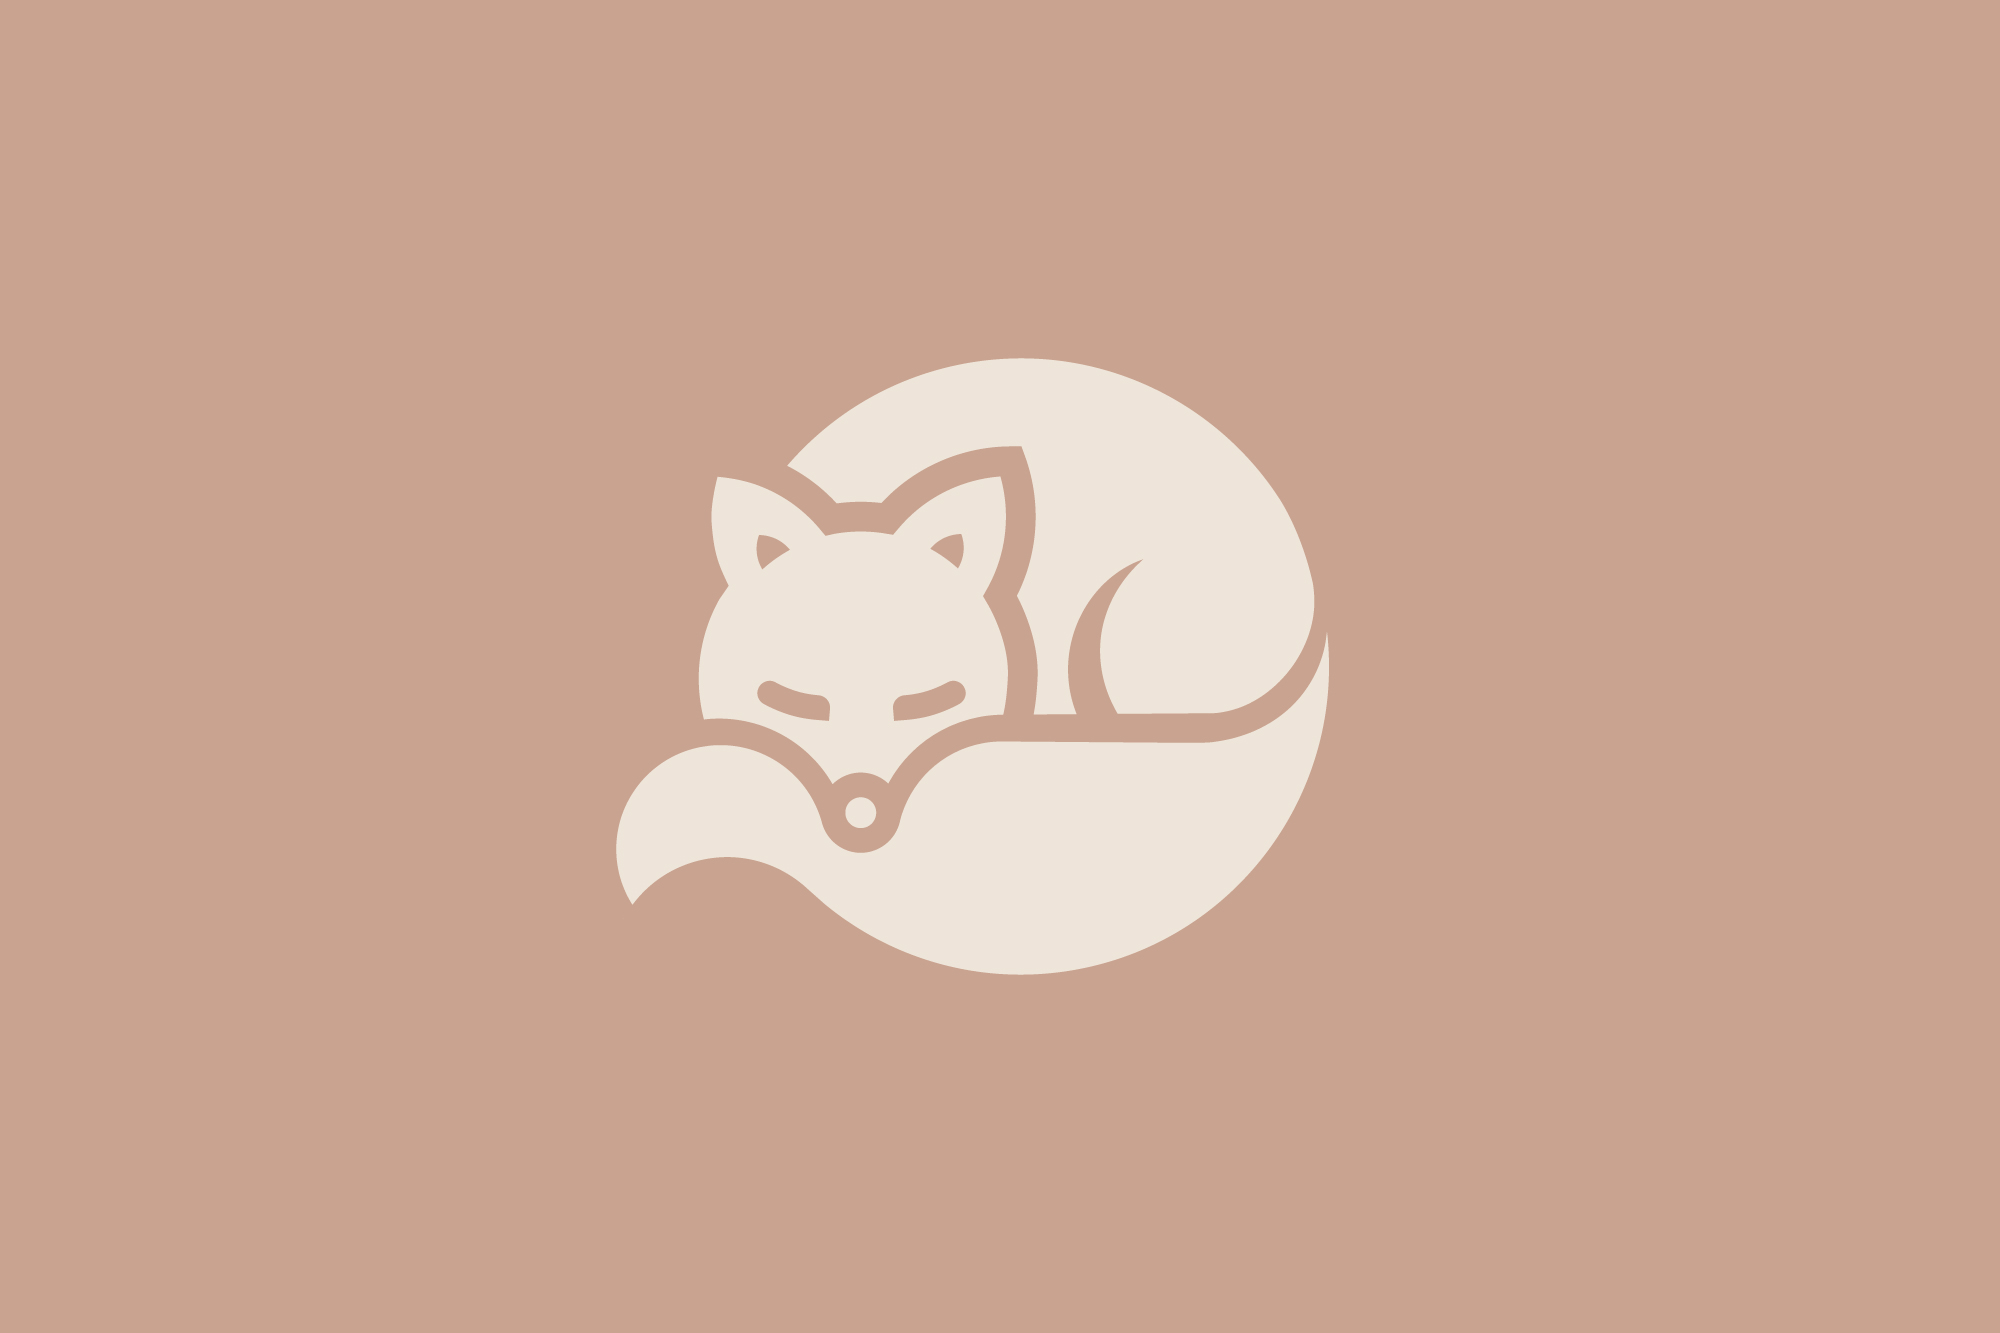 Rocco_And_The_Fox_Logo_Exploration_070620_Website_5